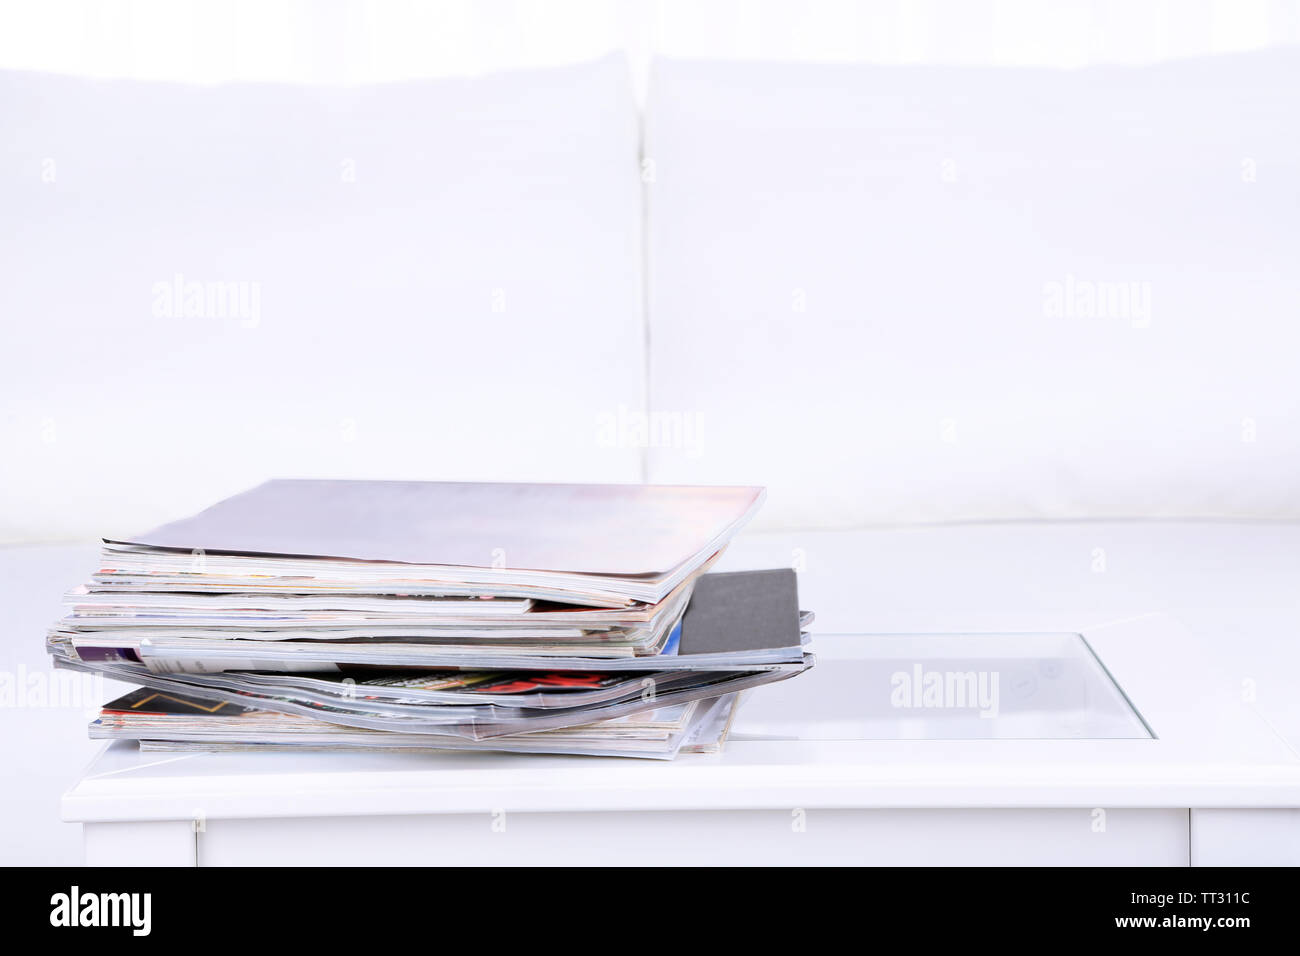 Magazines on coffee table in room - Stock Image